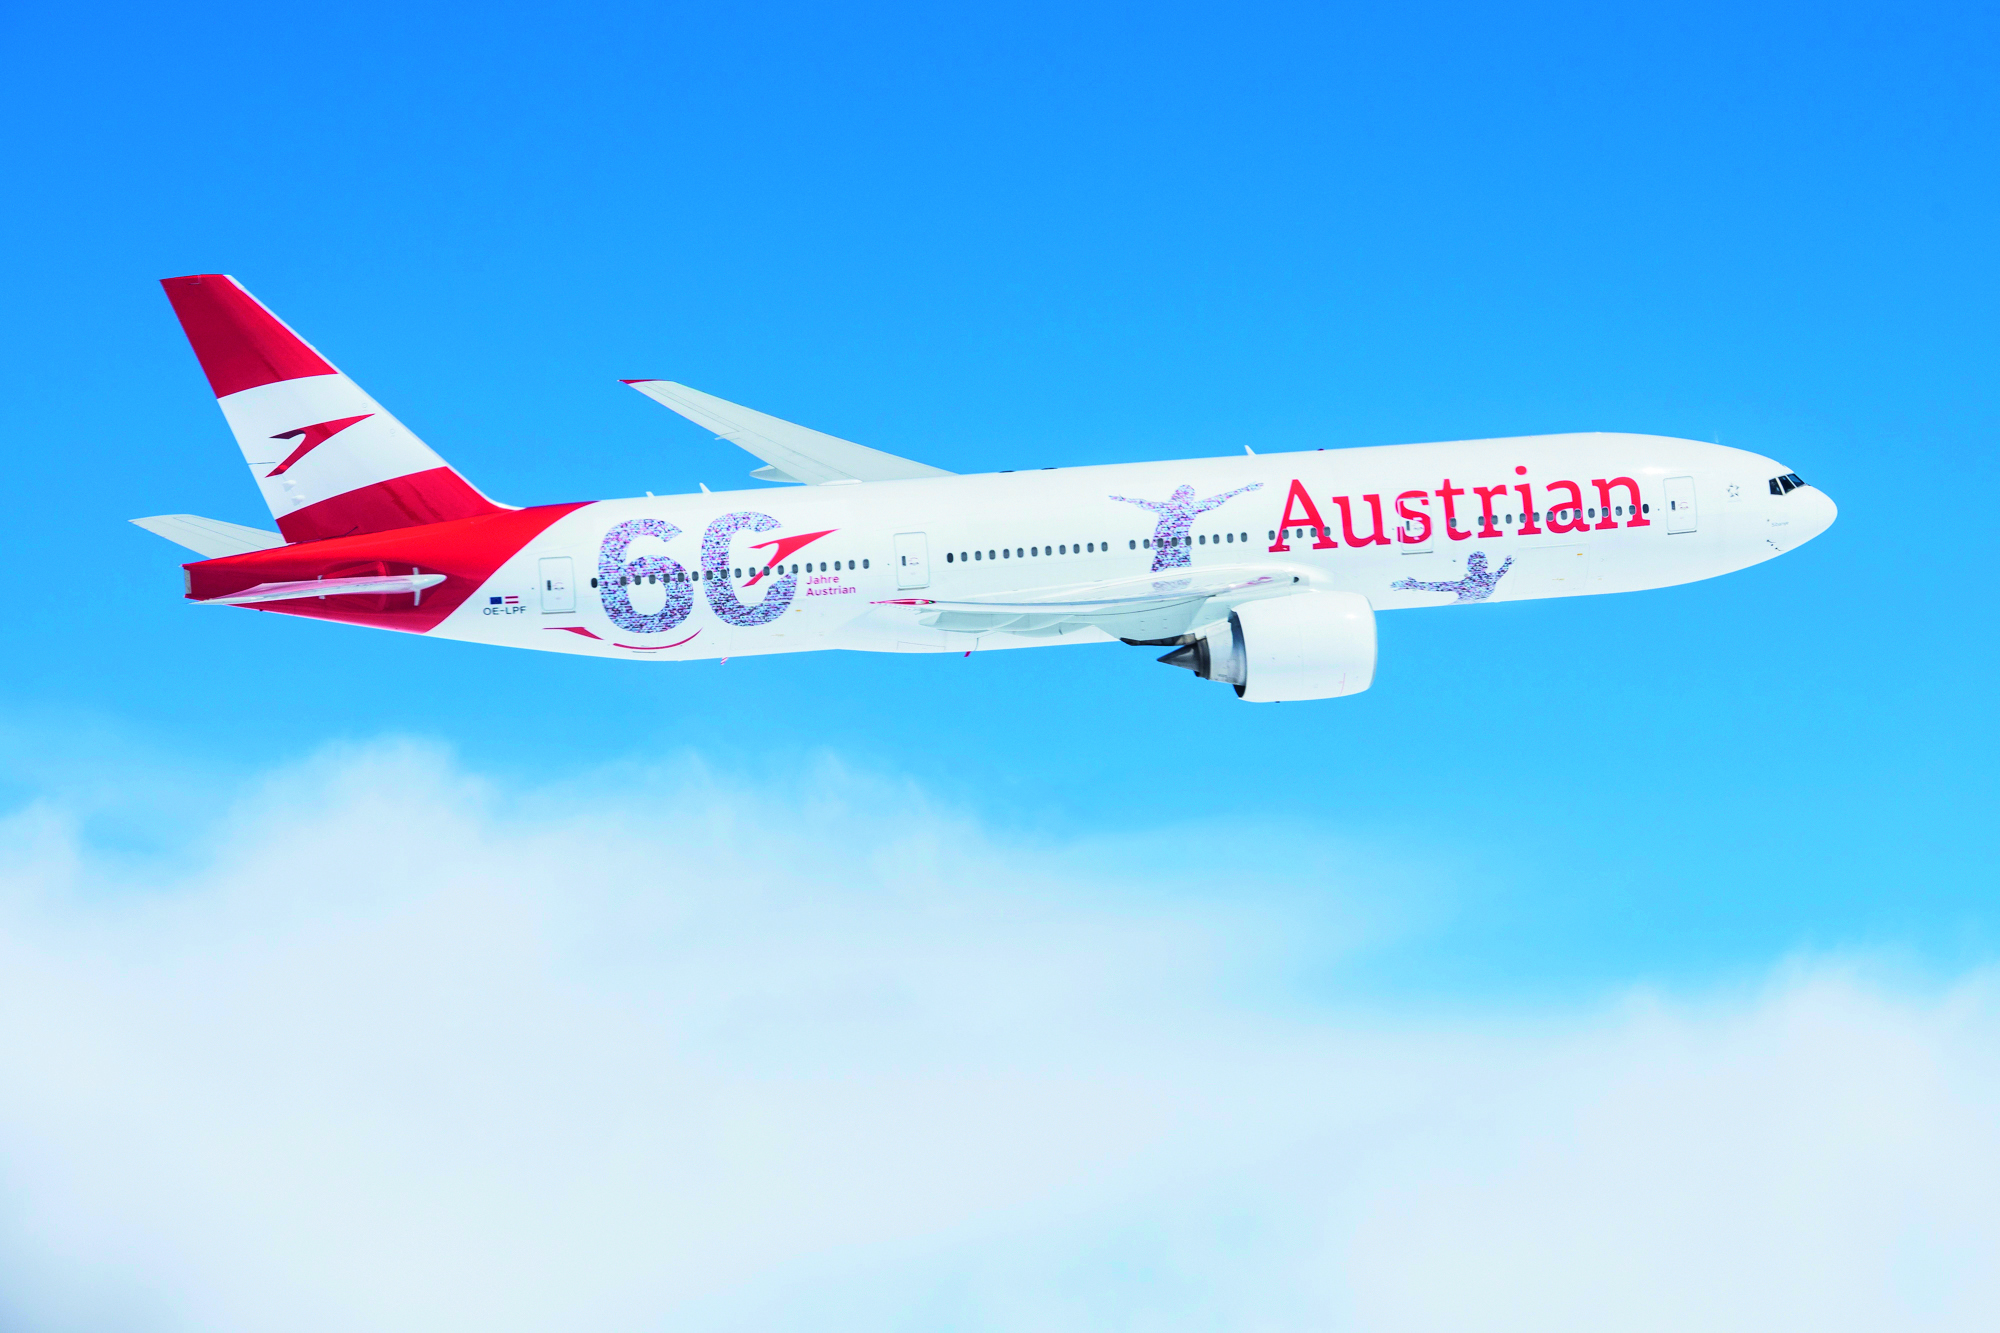 Austrian Airlines – Wikipedia